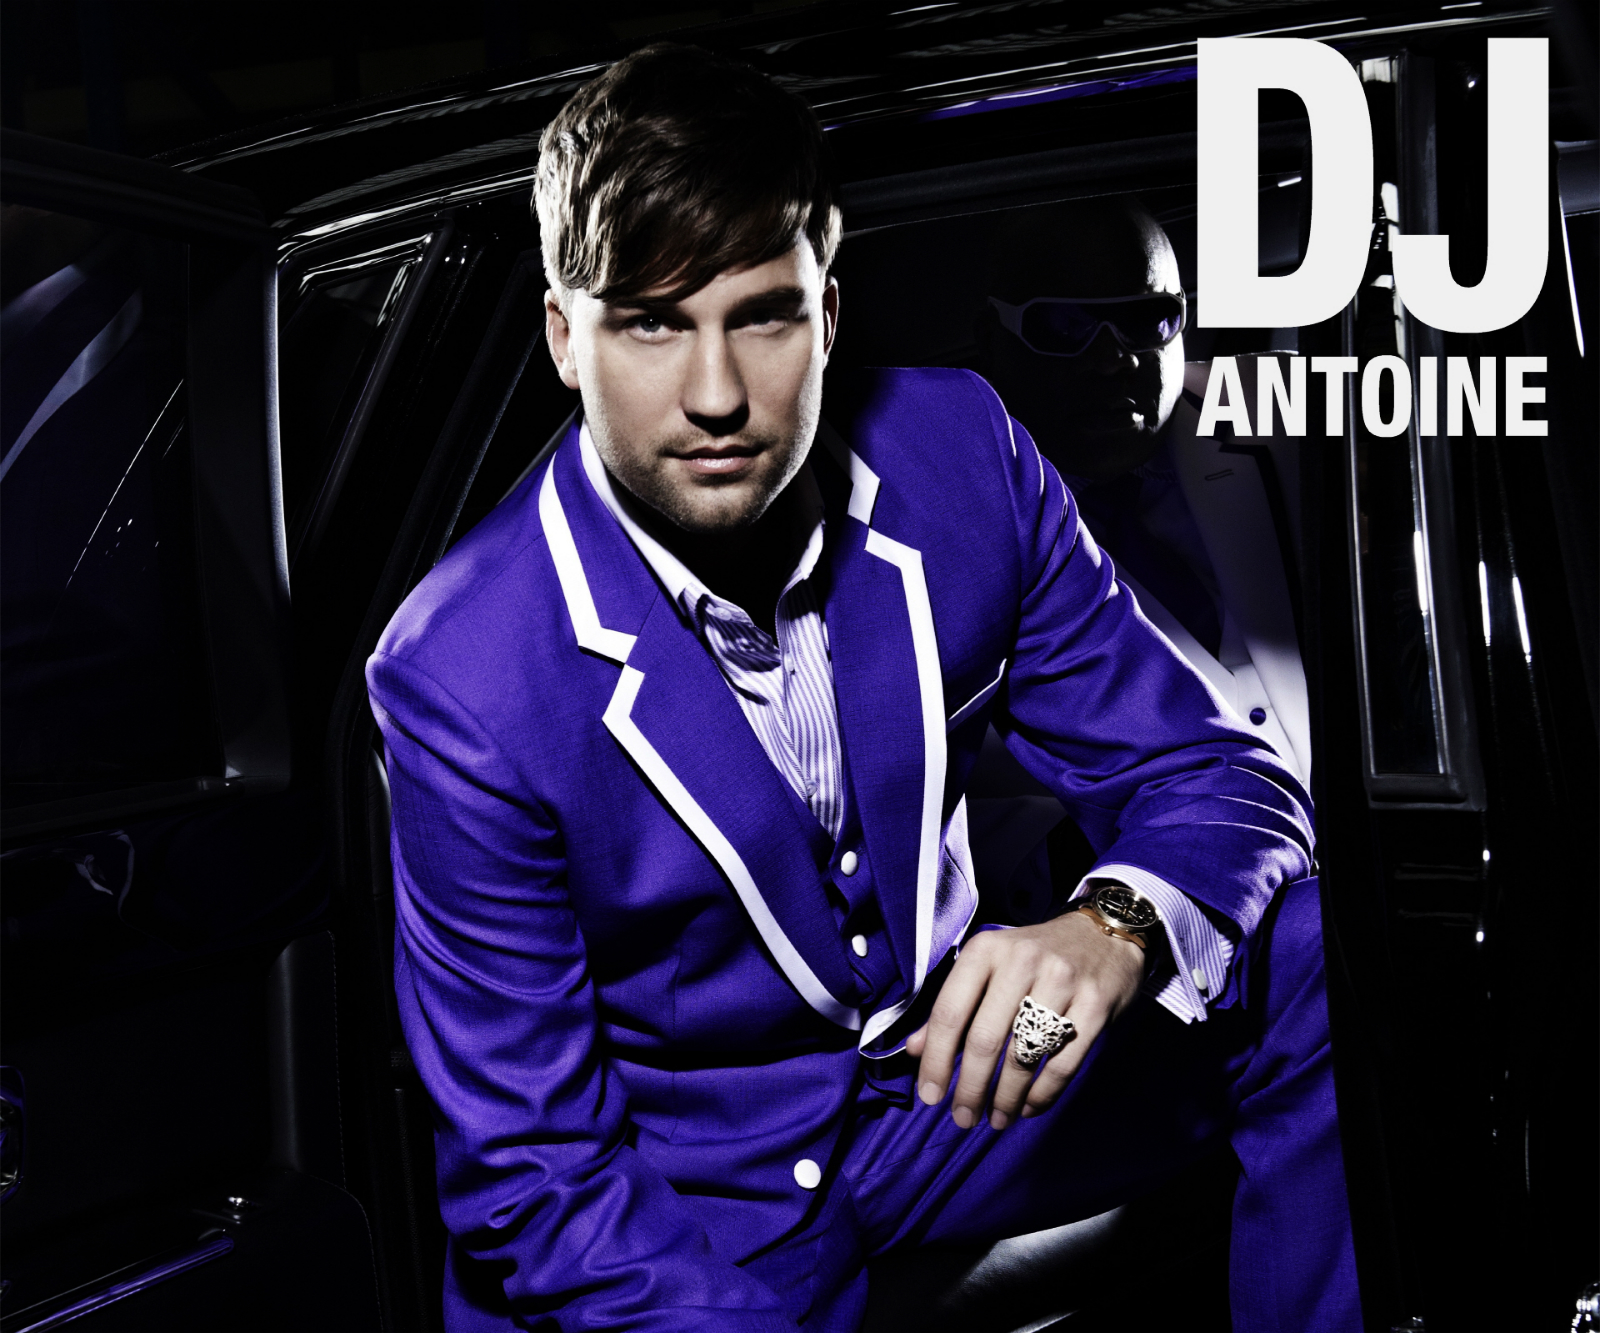 http://1.bp.blogspot.com/-lqdnESYtETM/T-ha0A0UxzI/AAAAAAAACR0/feJcsehNi7o/s1600/Dj_Antoine_in_Car_Blue_Suit_Tiger_Ring_HD_Wallpaper-Vvallpaper.Net.jpg